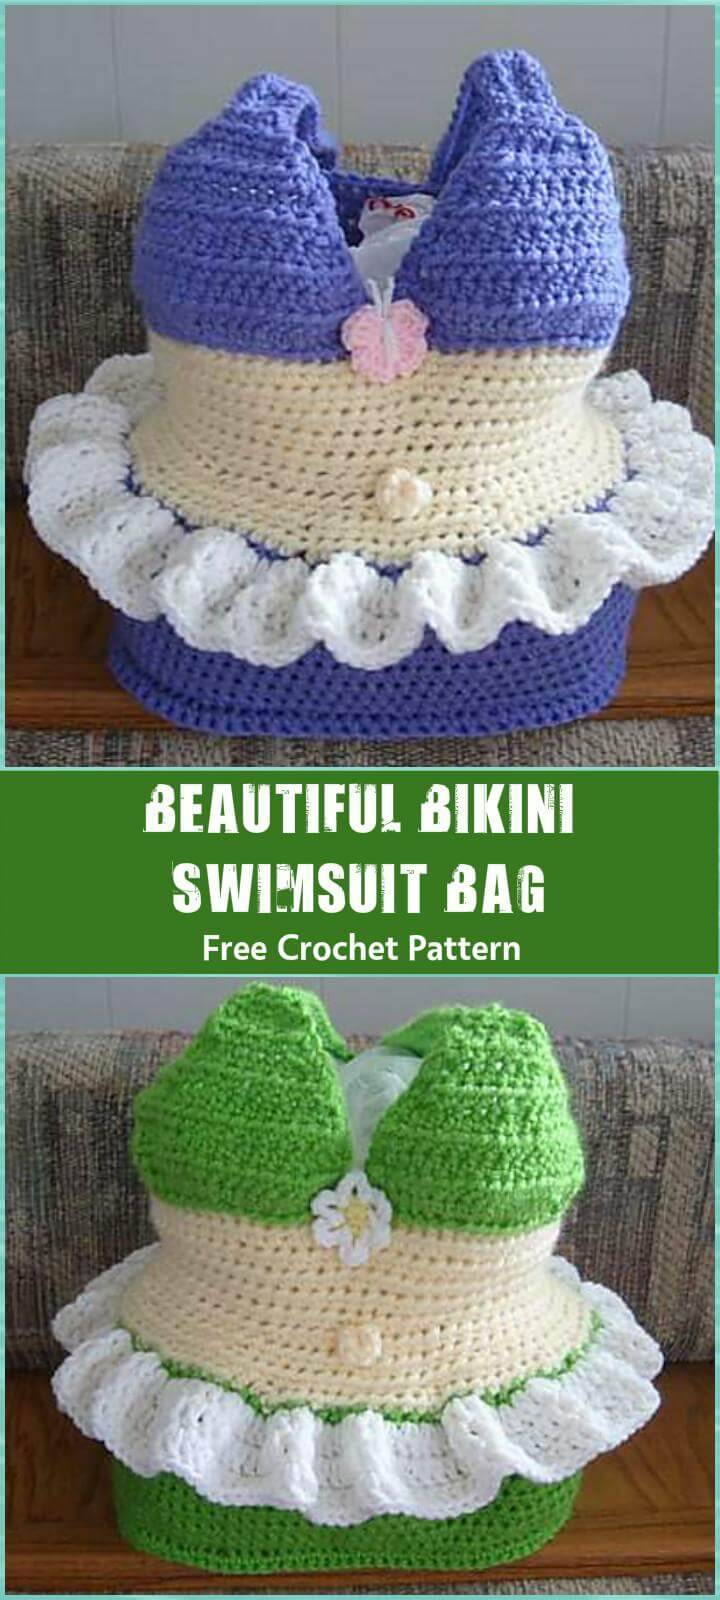 Beautiful Bikini Swimsuit Bag Free Crochet Pattern